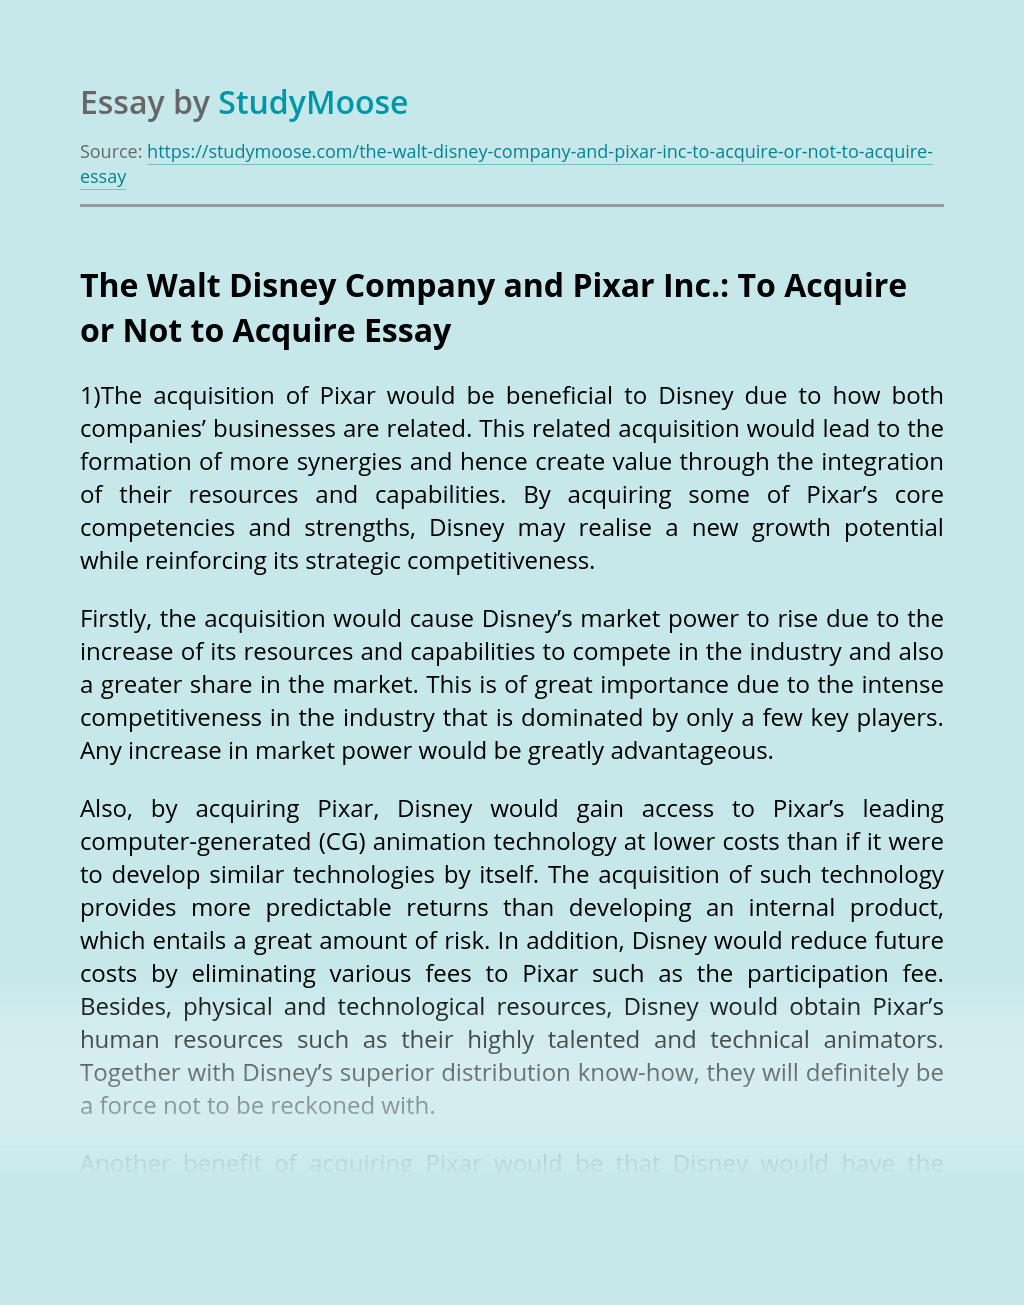 The Walt Disney Company and Pixar Inc.: To Acquire or Not to Acquire